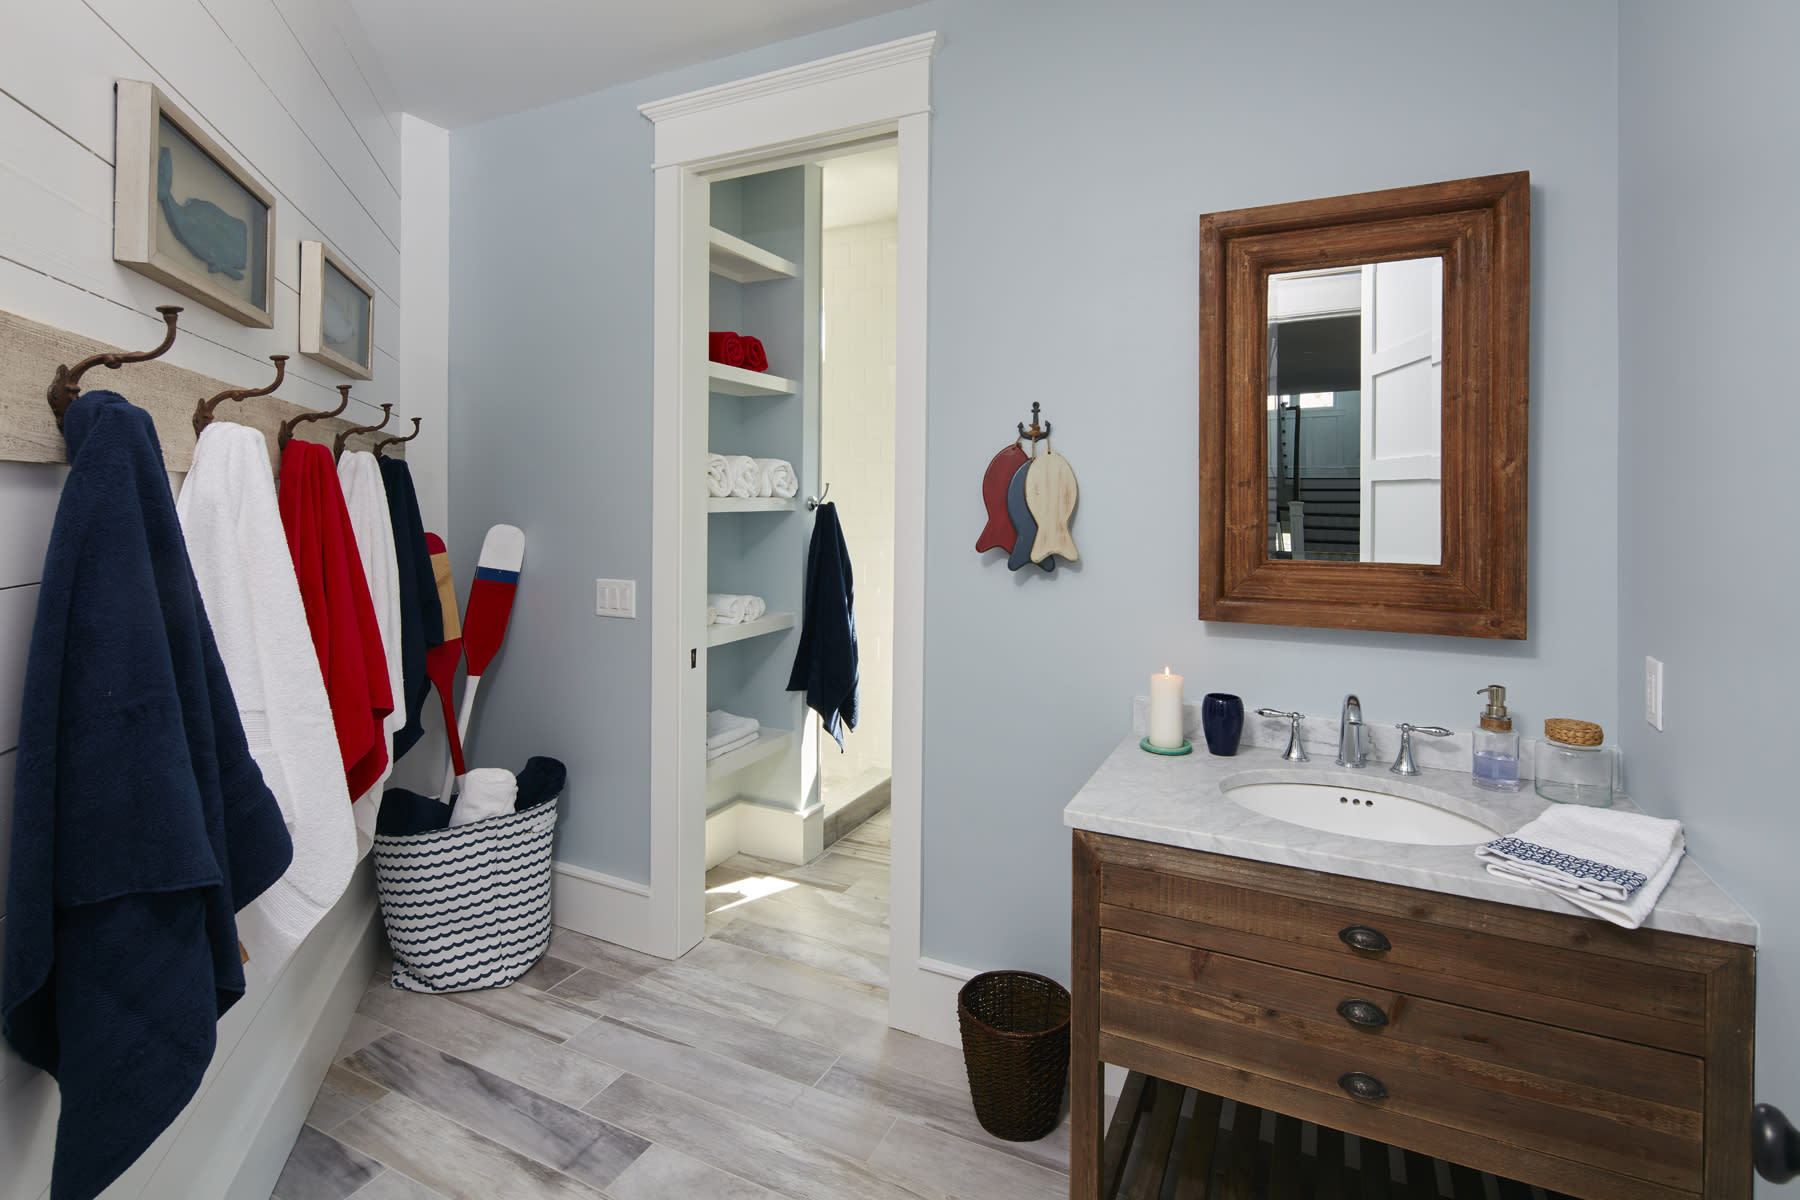 """This photo provided by Marnie Homes shows a bathroom and bedroom area designed by Marnie Oursler. Kids are more likely to place items on shelves, especially if they can drop clothing in baskets, or use hooks rather than hangers to put away their clothing, says designer and builder Oursler, host of the DIY Networks series """"Big Beach Builds."""" (Dana Hoff/Marnie Homes via AP)"""